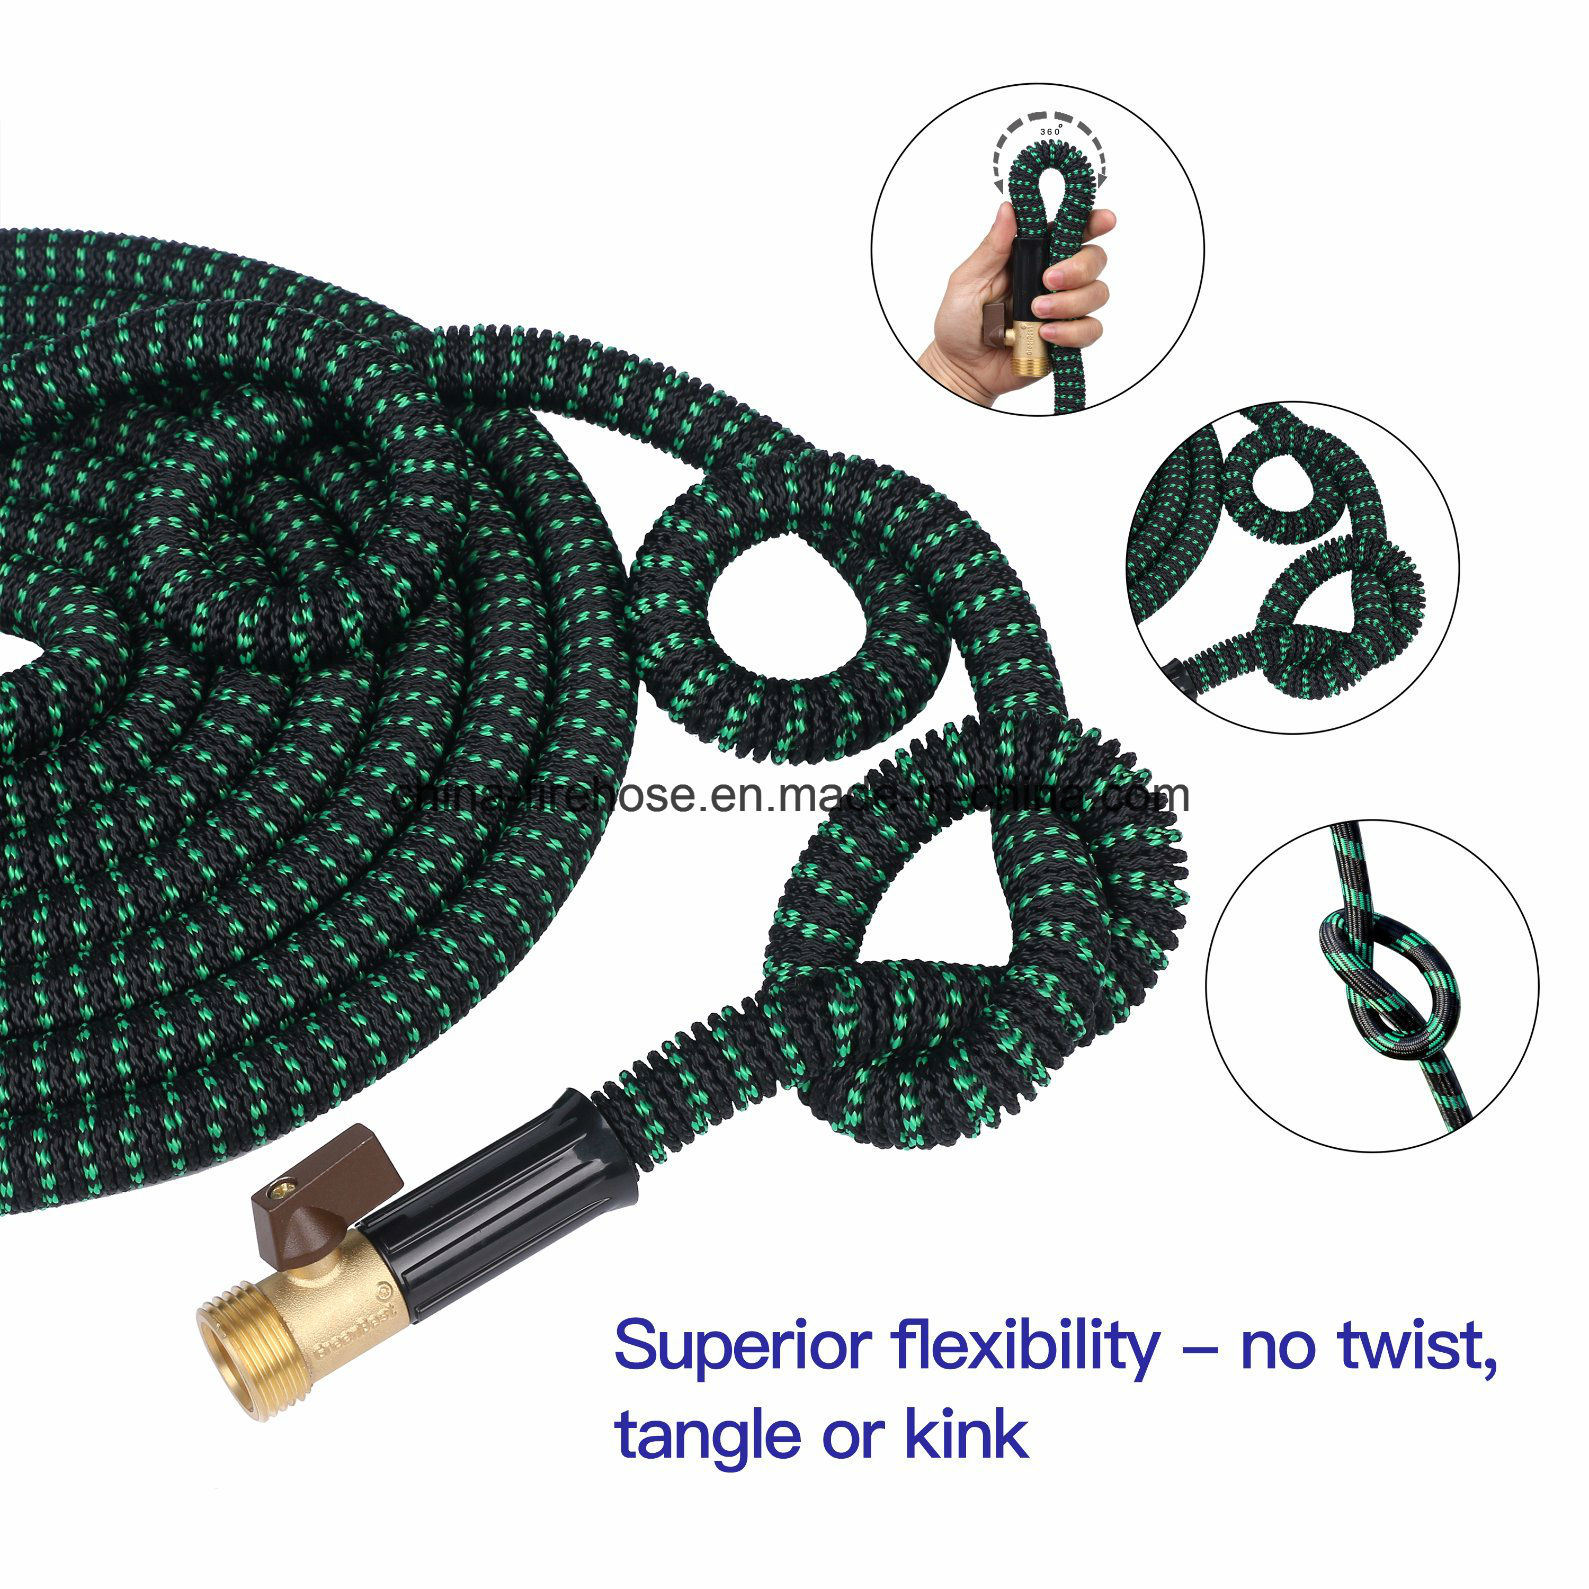 50′ Expandable Hose. Water Hose, 8 Set Spray, Hanger. Garden Hose with 3 Layer Latex Inner Tube, Solid Brass Connectors,Strongest Expanding Hose on The Market F